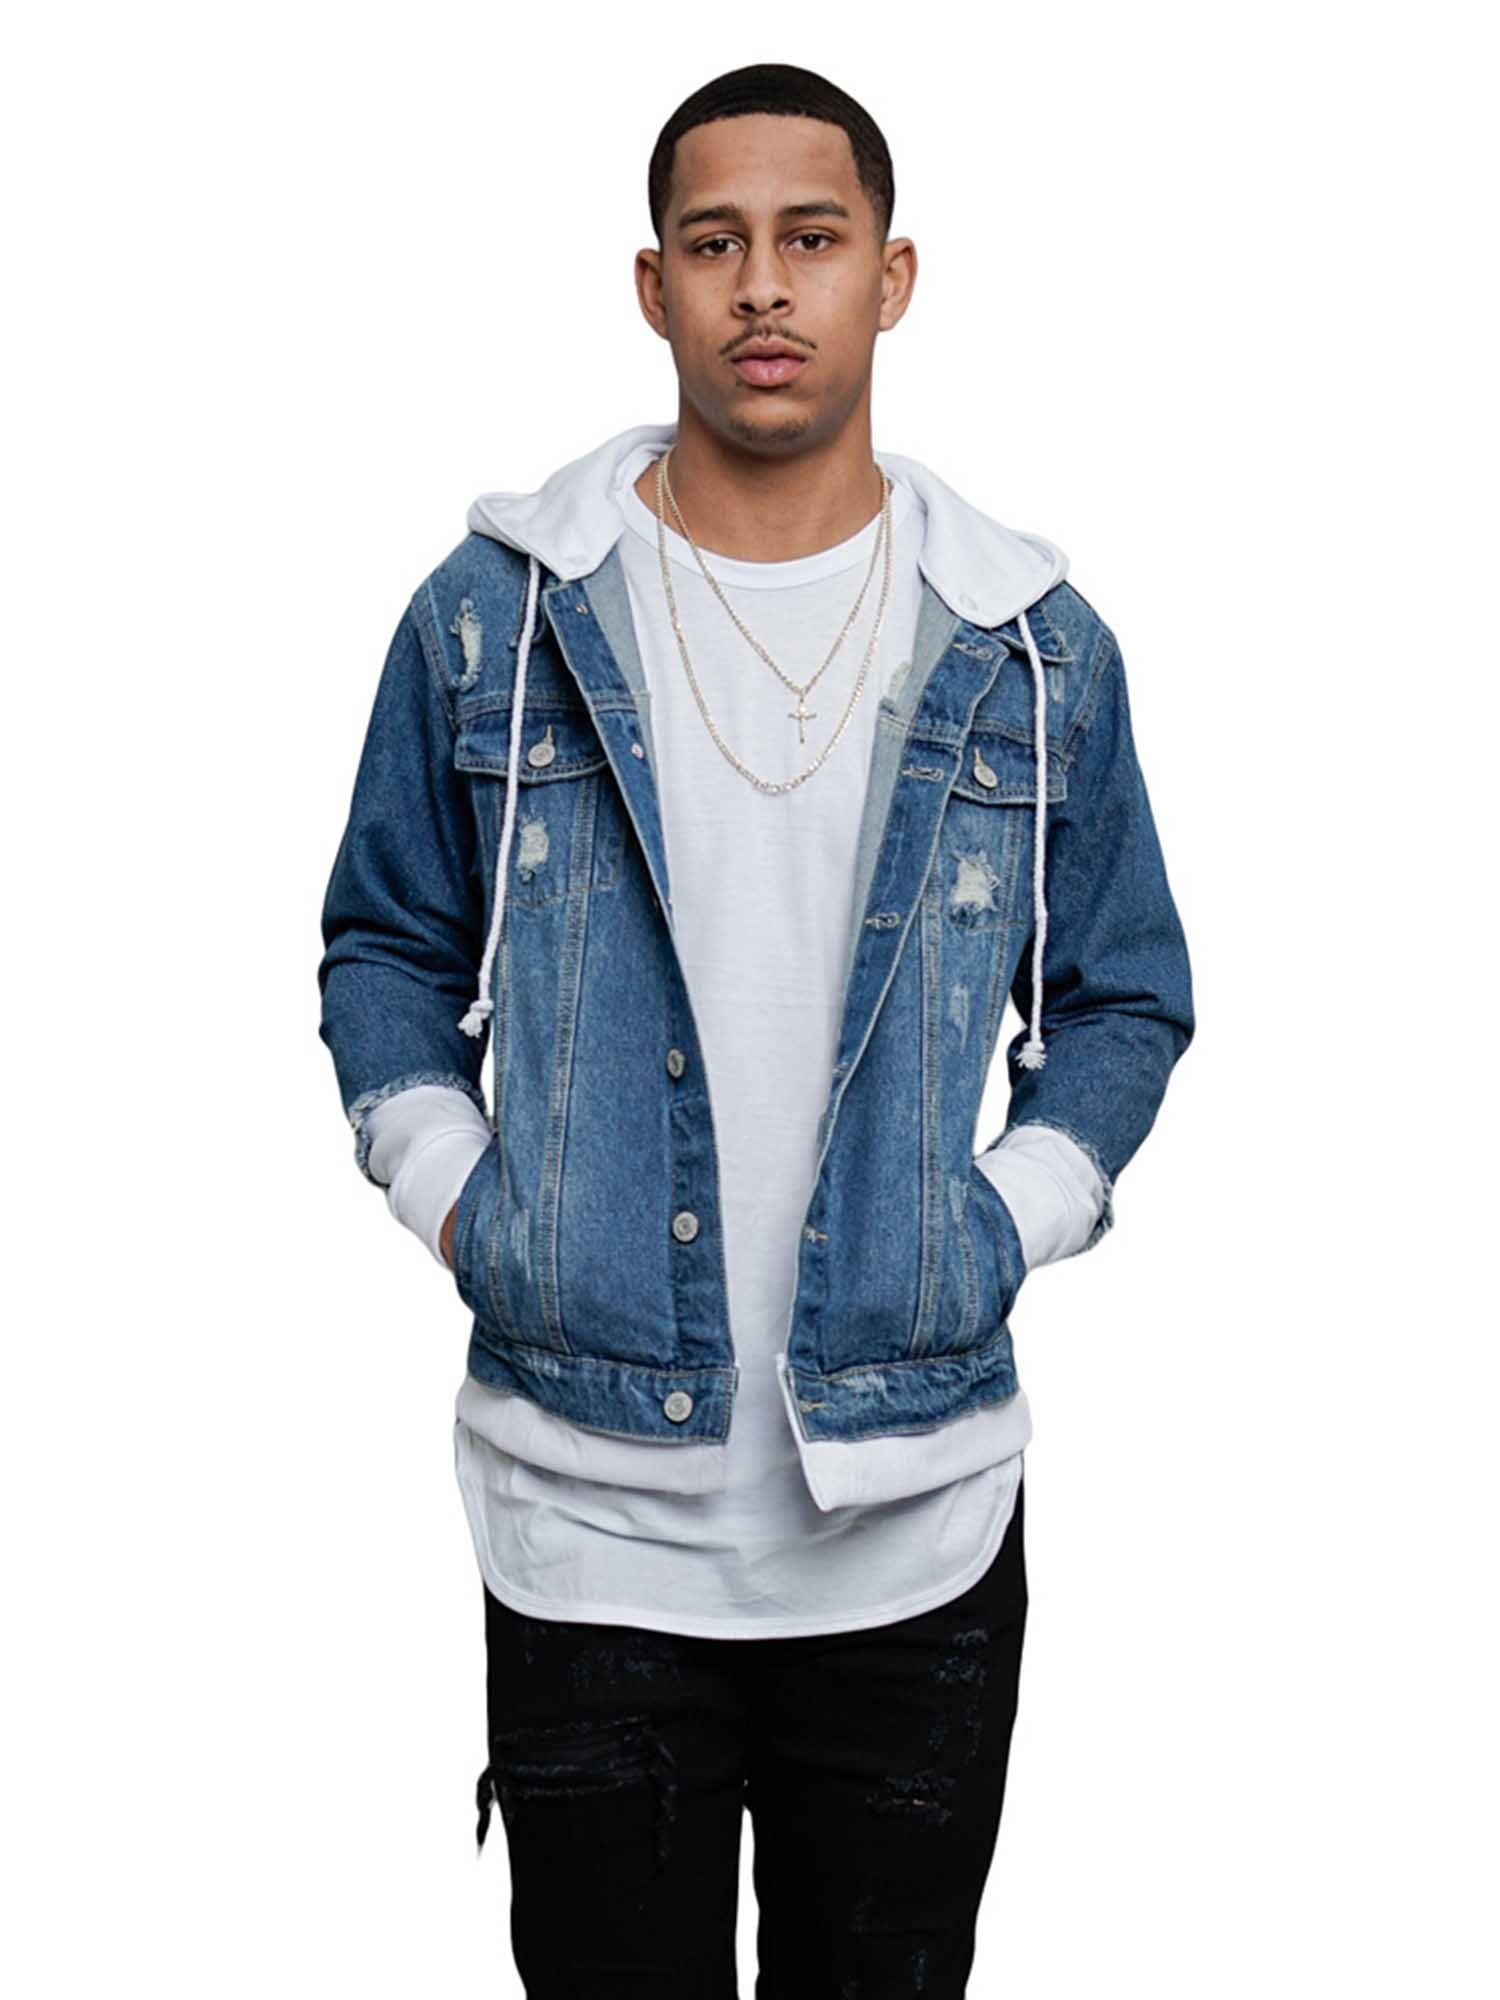 Victorious Men S Hoodie Layered Ripped Denim Jacket With Removable Hood Dk140 Indigo White Small Walmart Com In 2021 Denim Jacket Ripped Denim Distressed Denim Jacket [ 2000 x 1500 Pixel ]